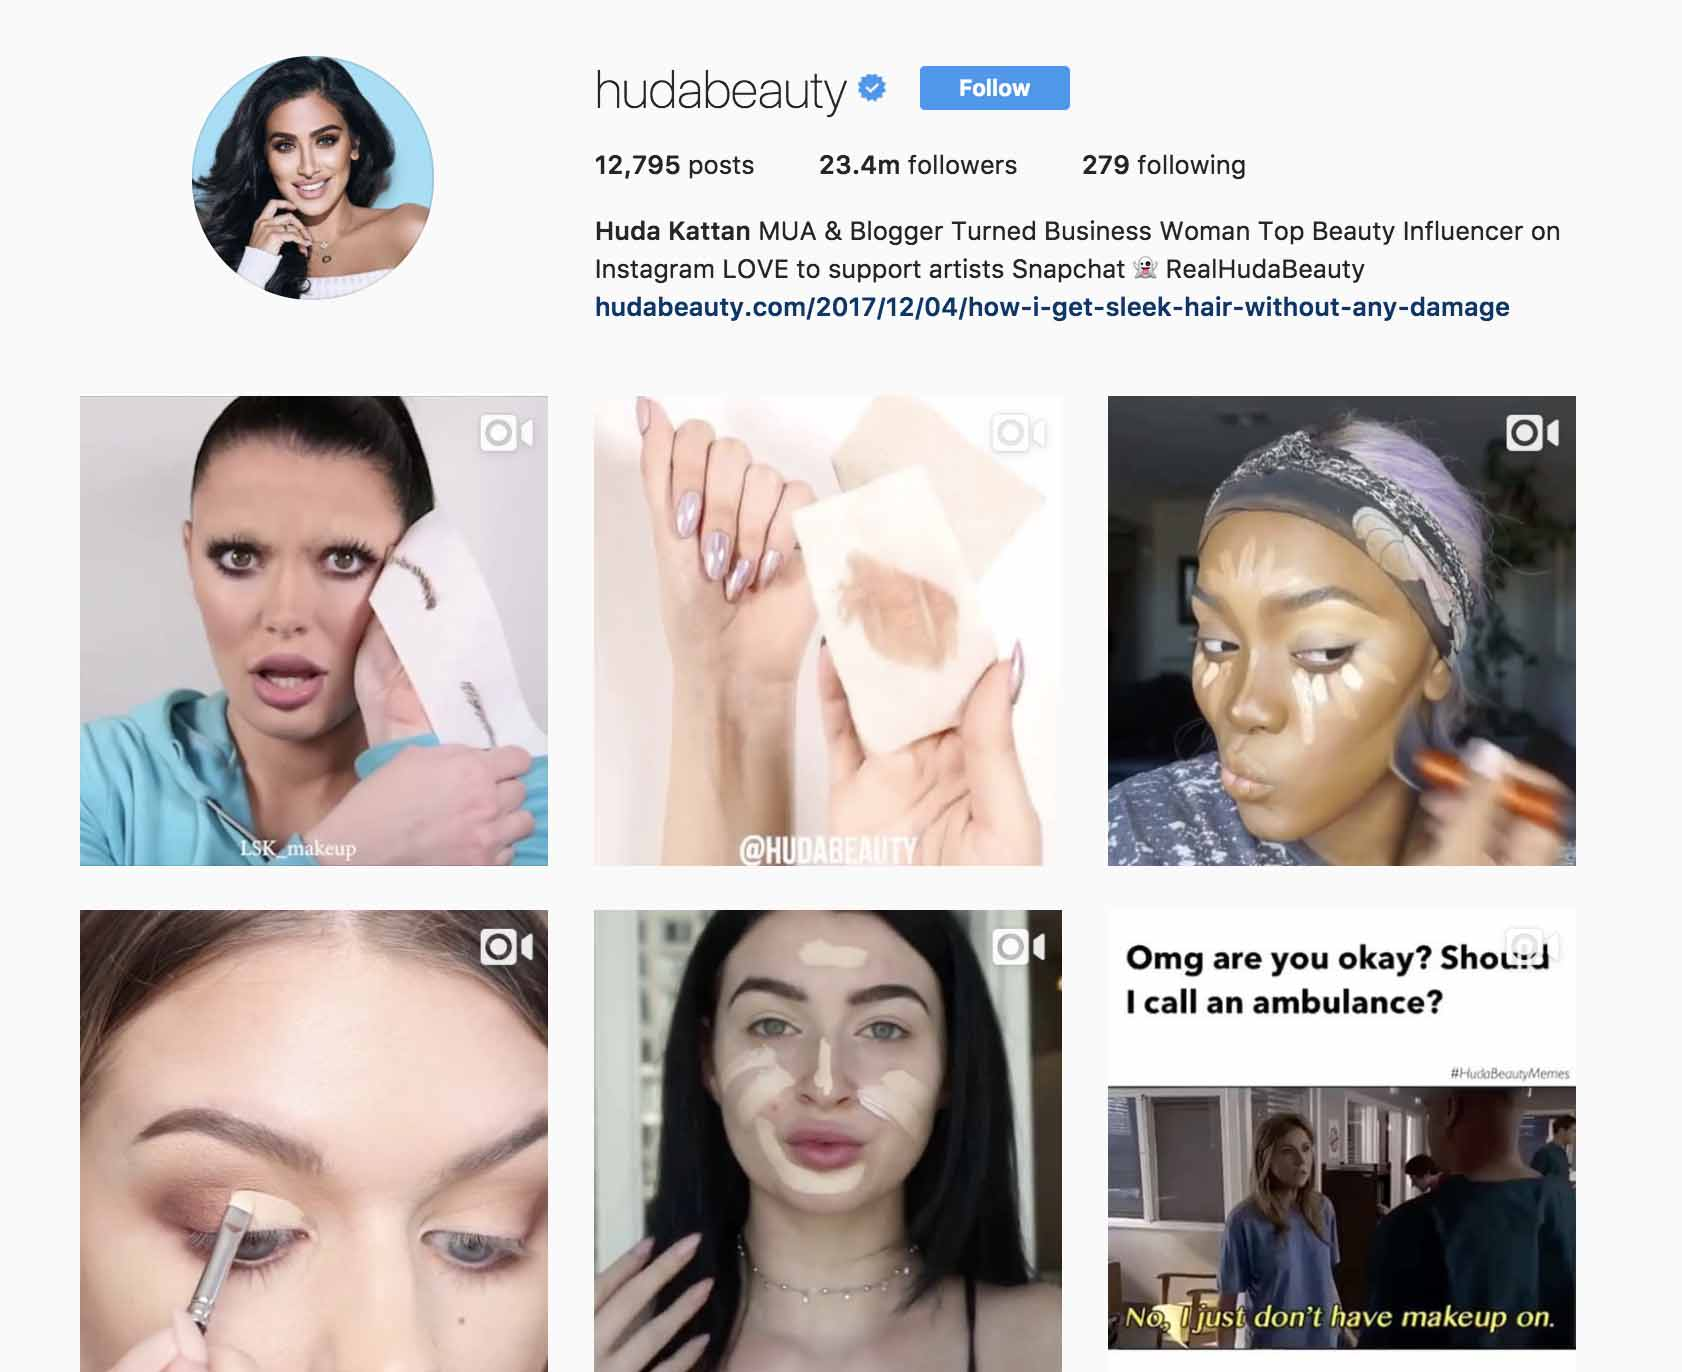 huda-beauty-best-brands-on-instagram